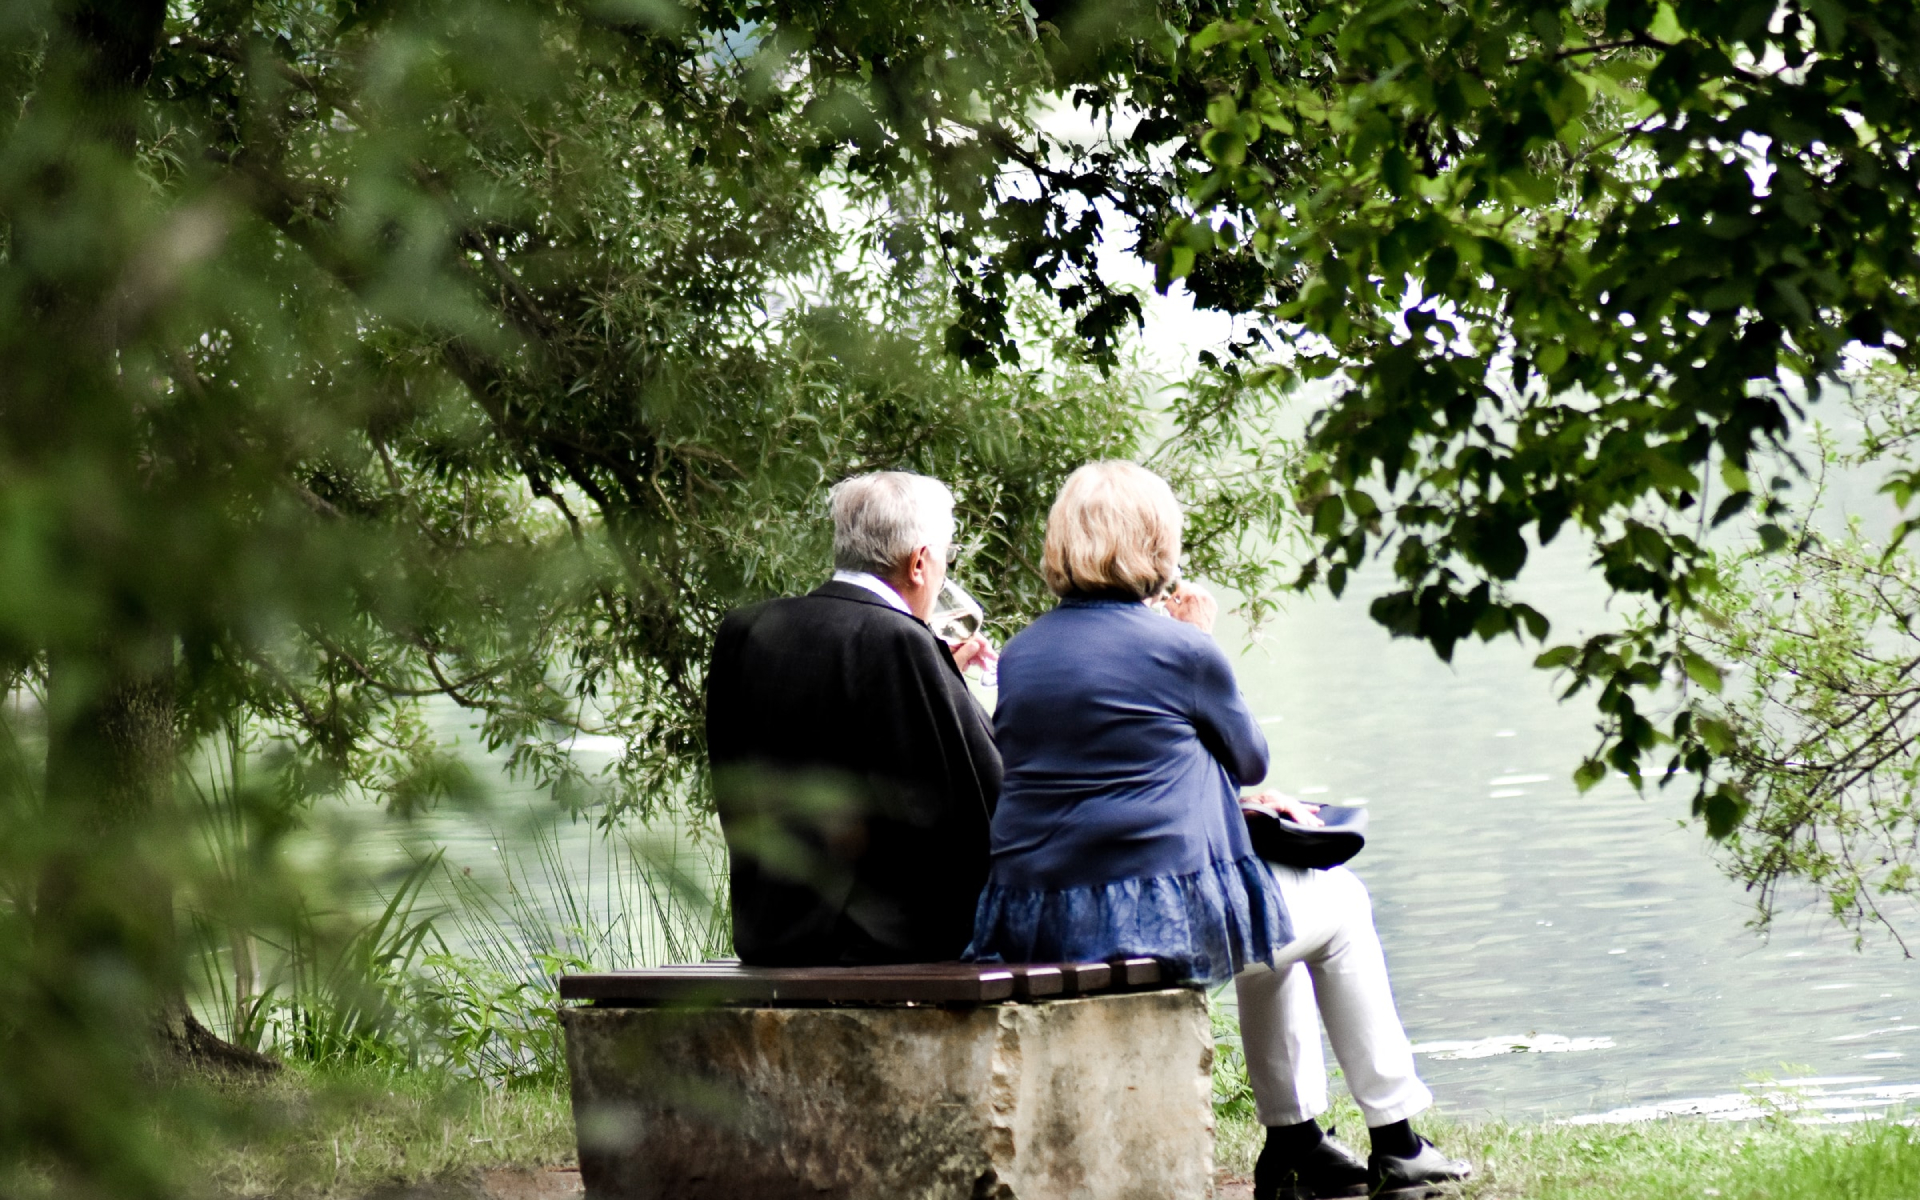 PENSION & <strong>RETIREMENT OPTIONS</strong>